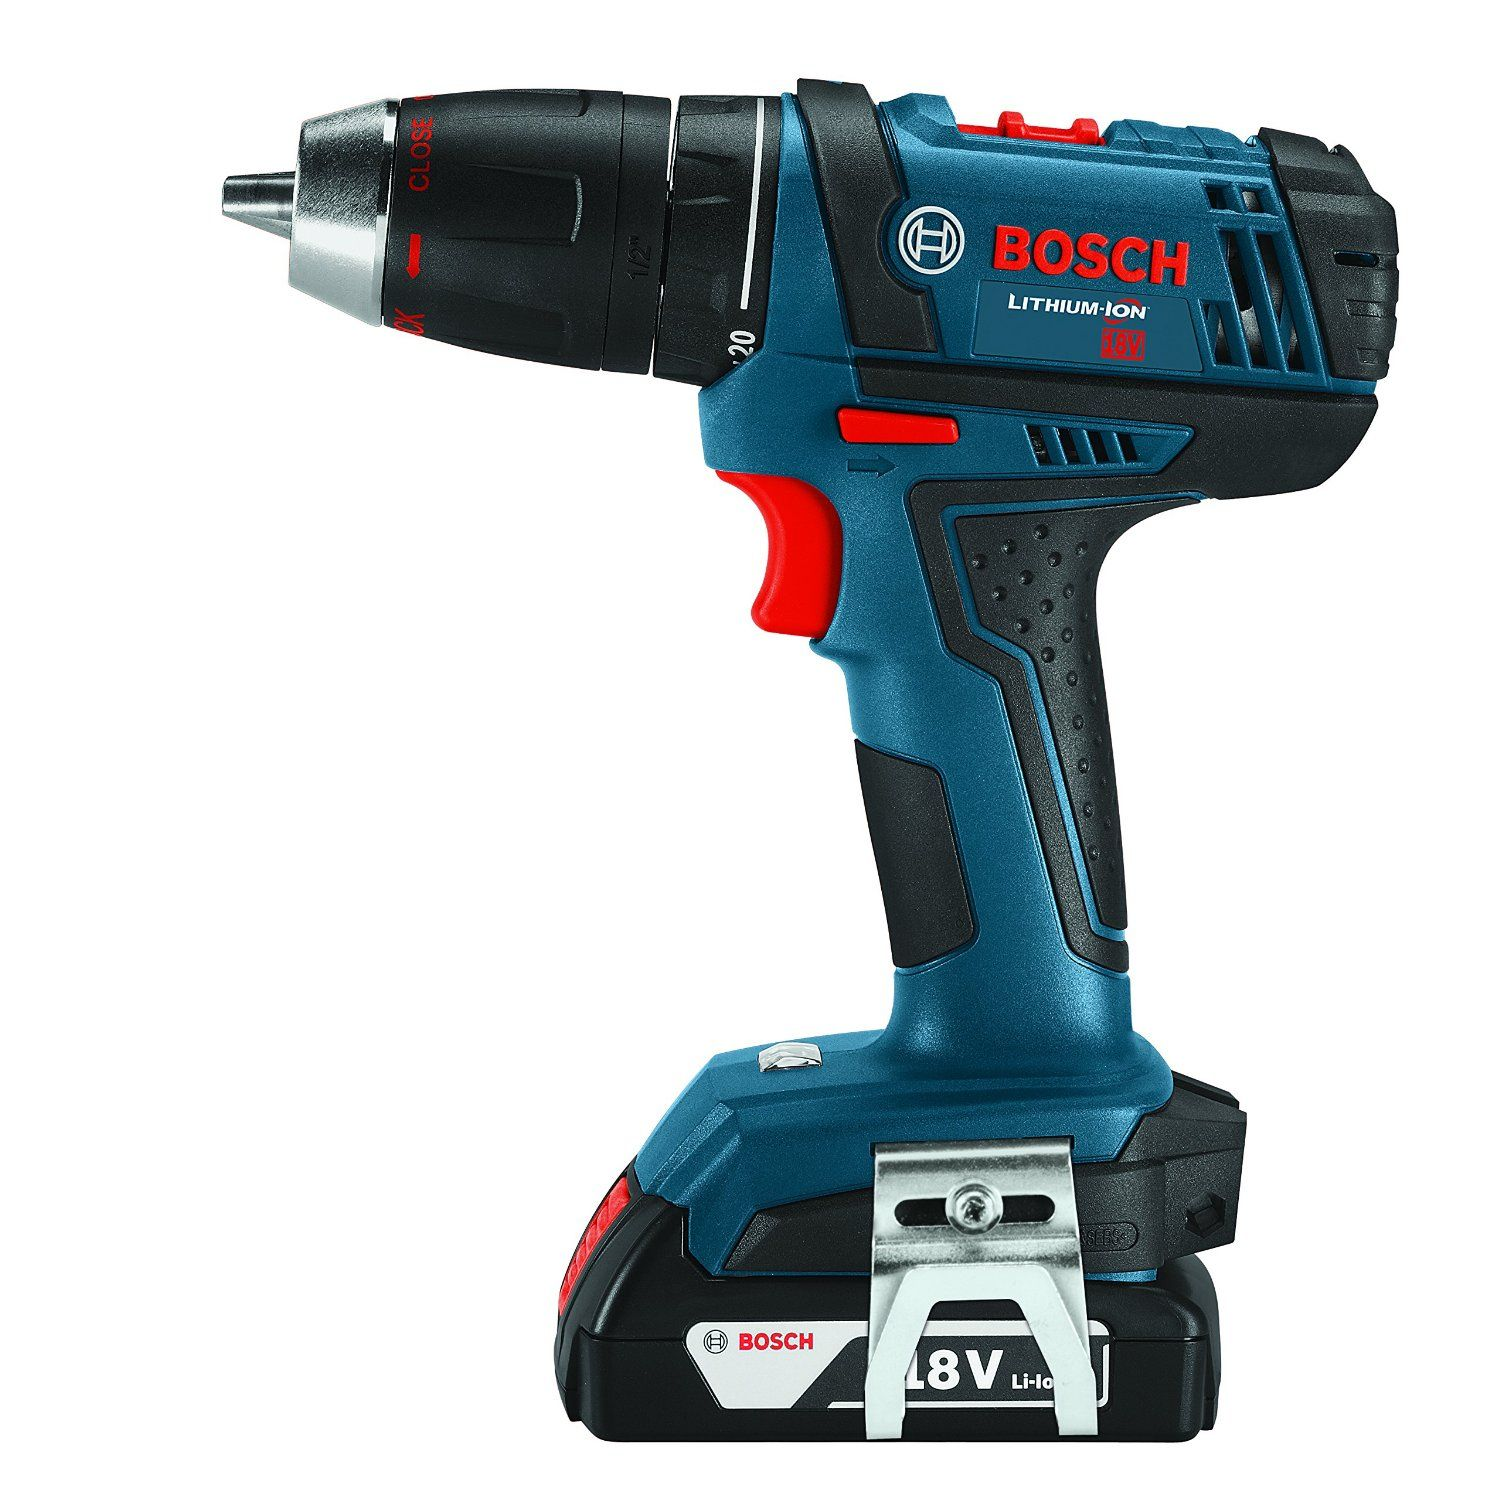 Best Corded Drill Under Buyer S Guide Reviews Corded Drill Drill Drill Driver